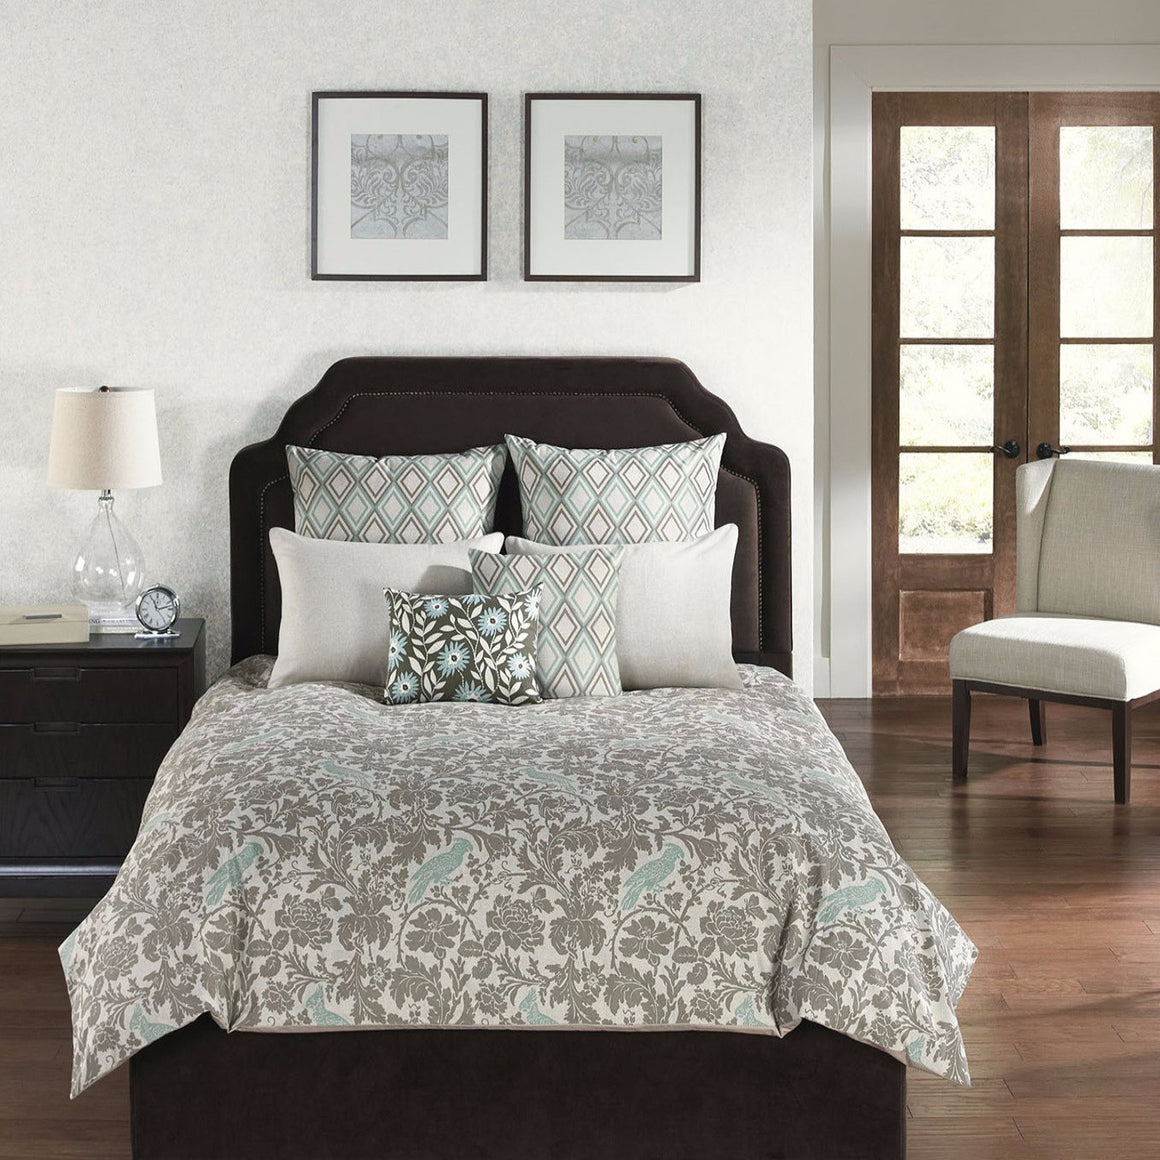 Camden Square Park Comforter Bed Set